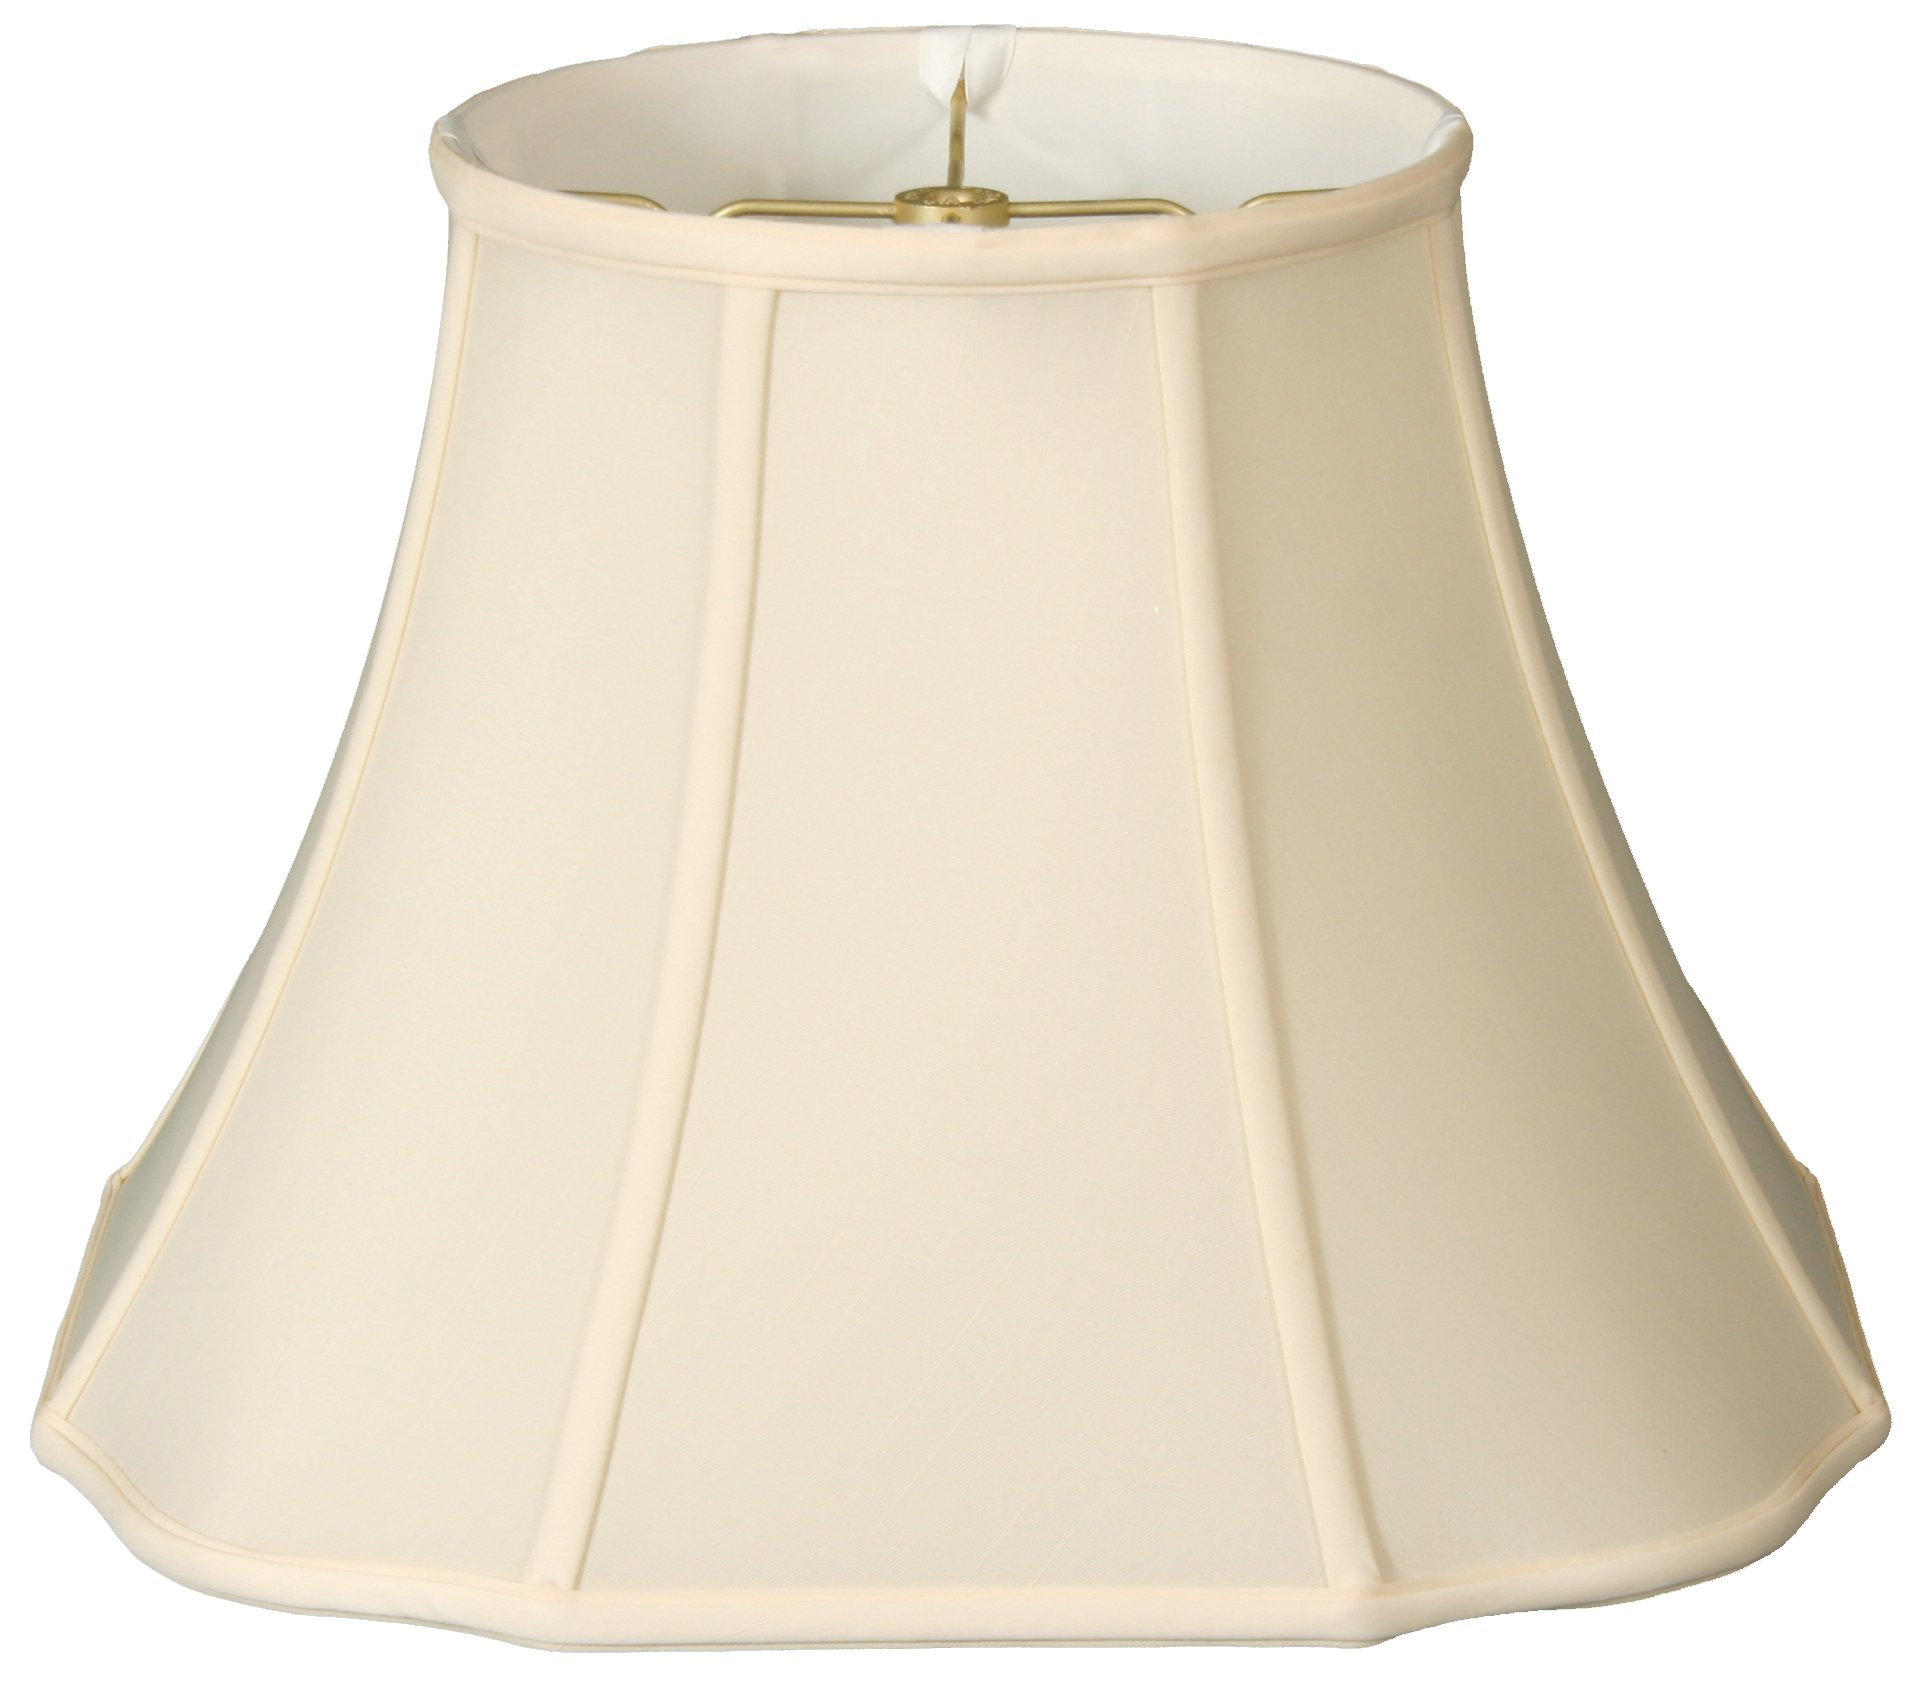 Royal Designs Flare Bottom Outside Corner Scallop Basic Lamp Shade - Eggshell - 9 x 16 x 12